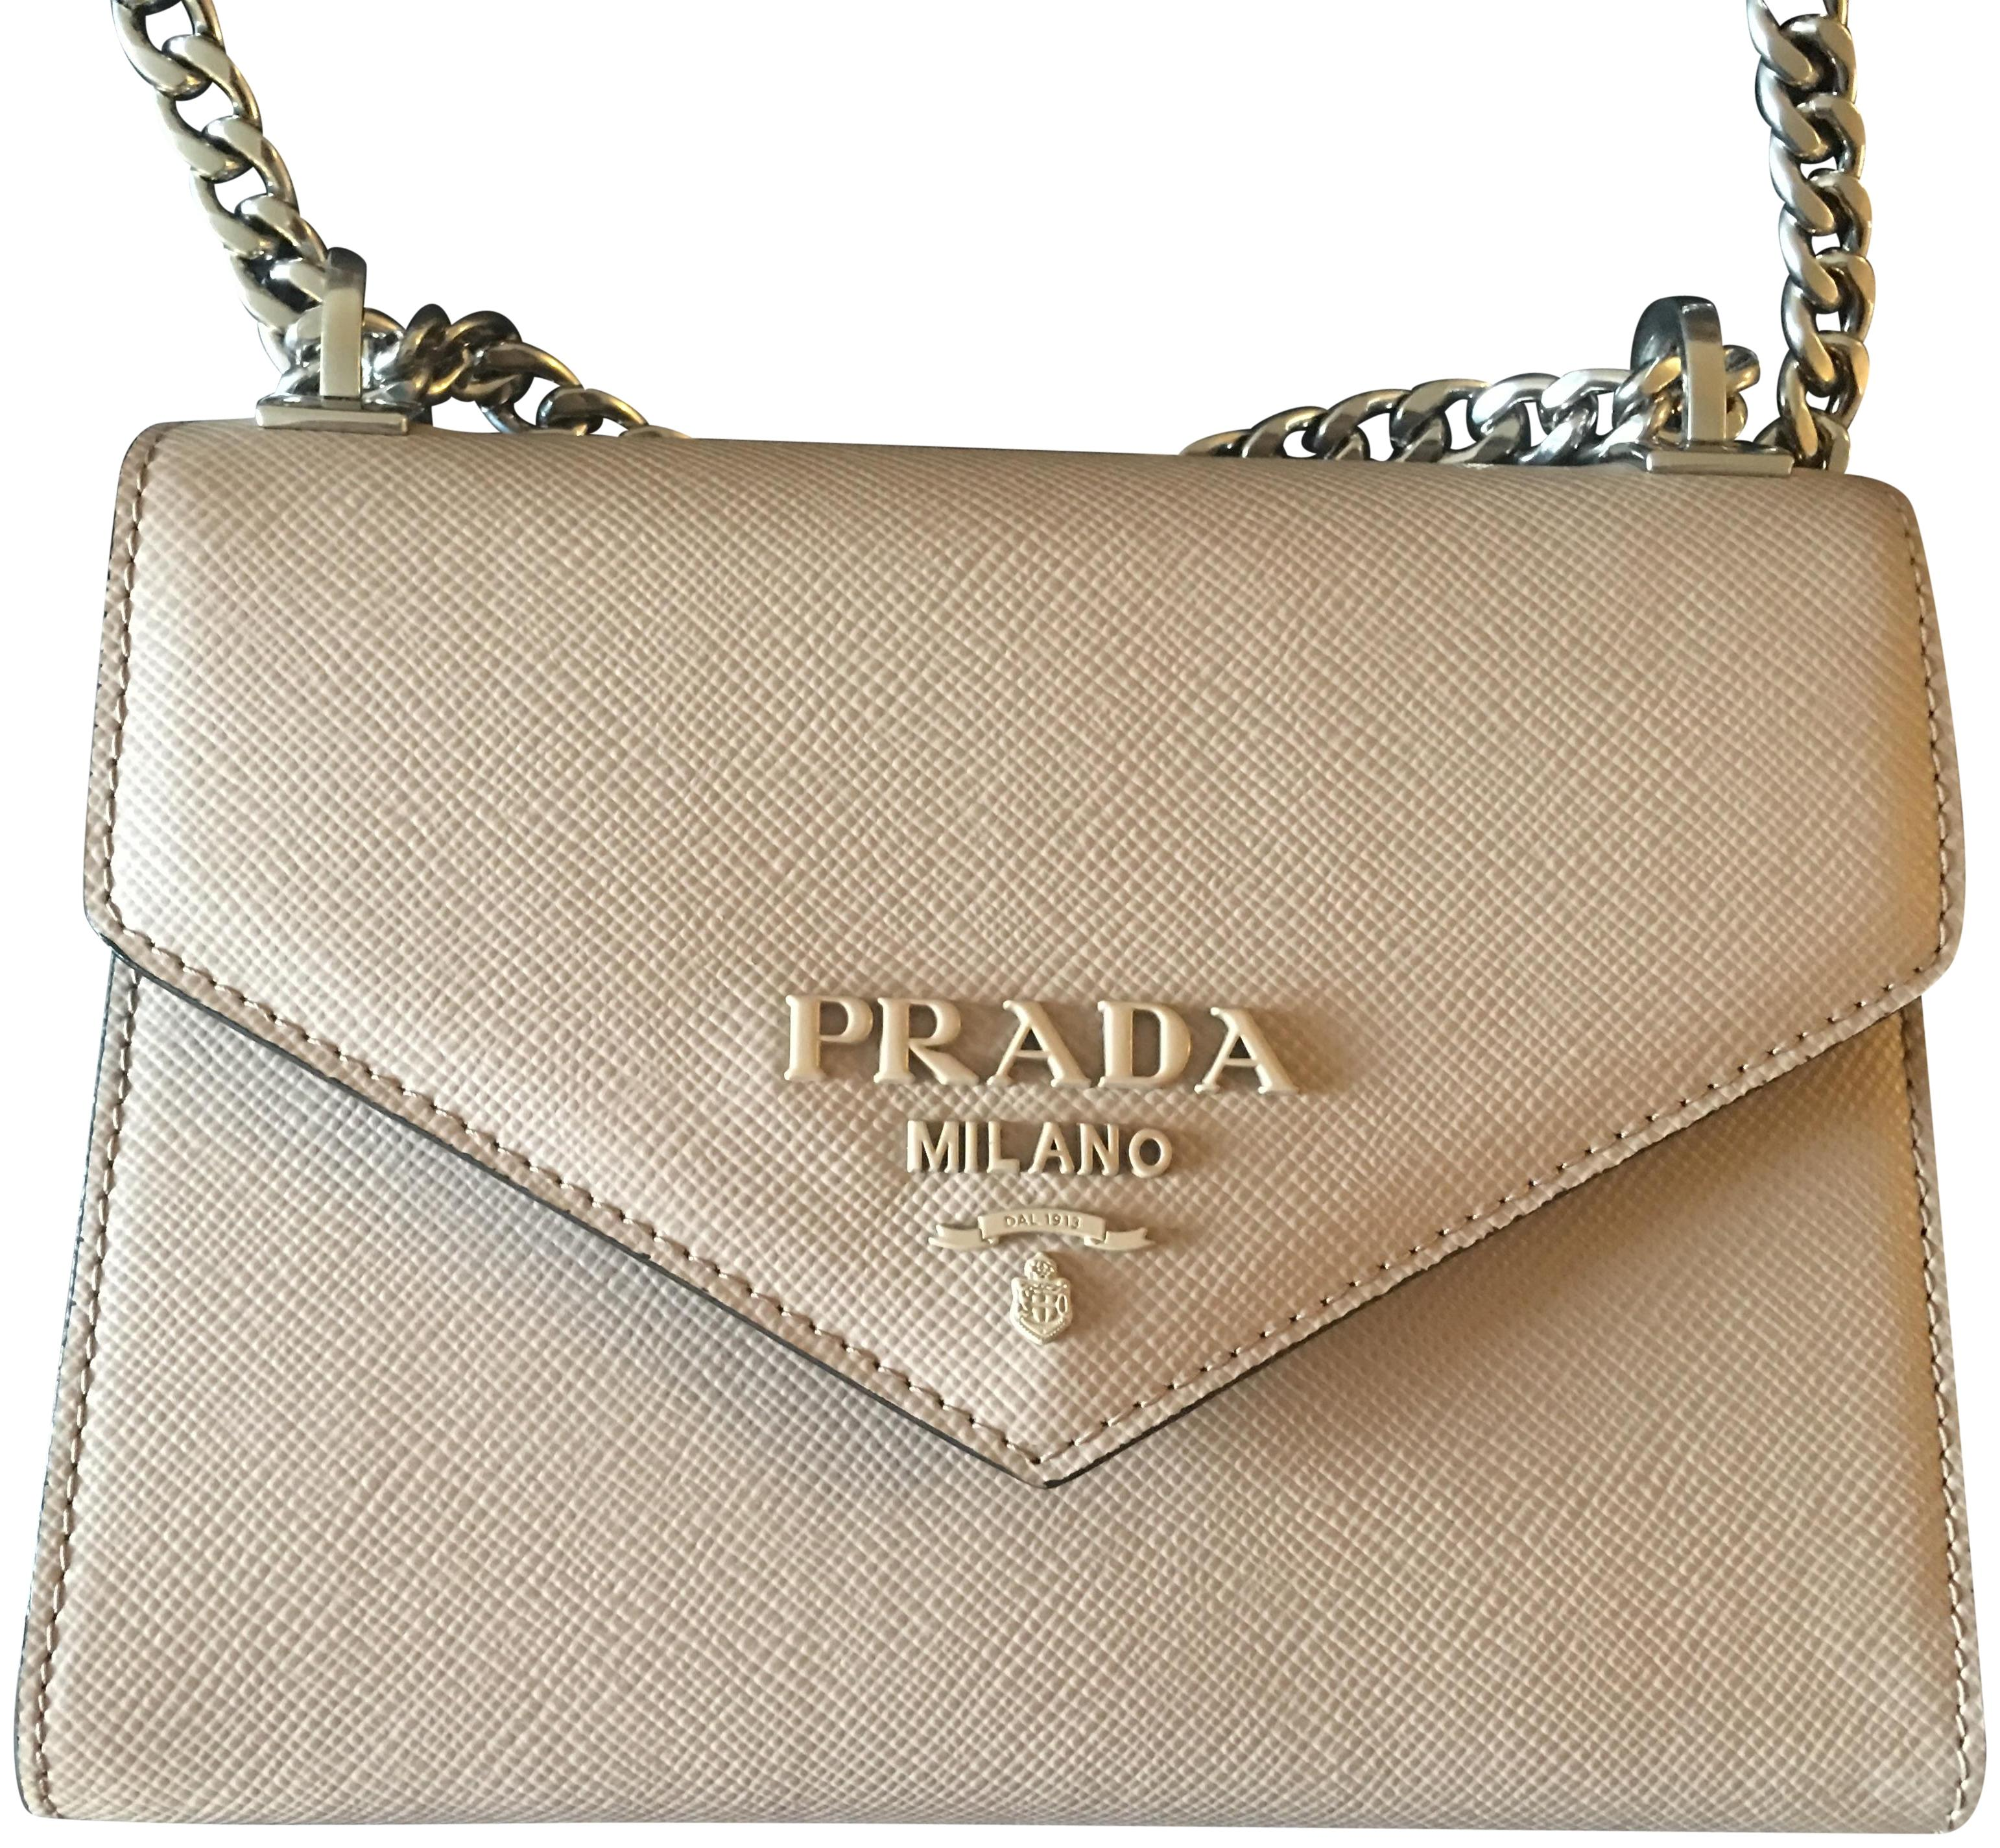 3d466dc0dbbc ... discount code for prada messenger crossbody saffiano new season shoulder  bag 4418c cf50a